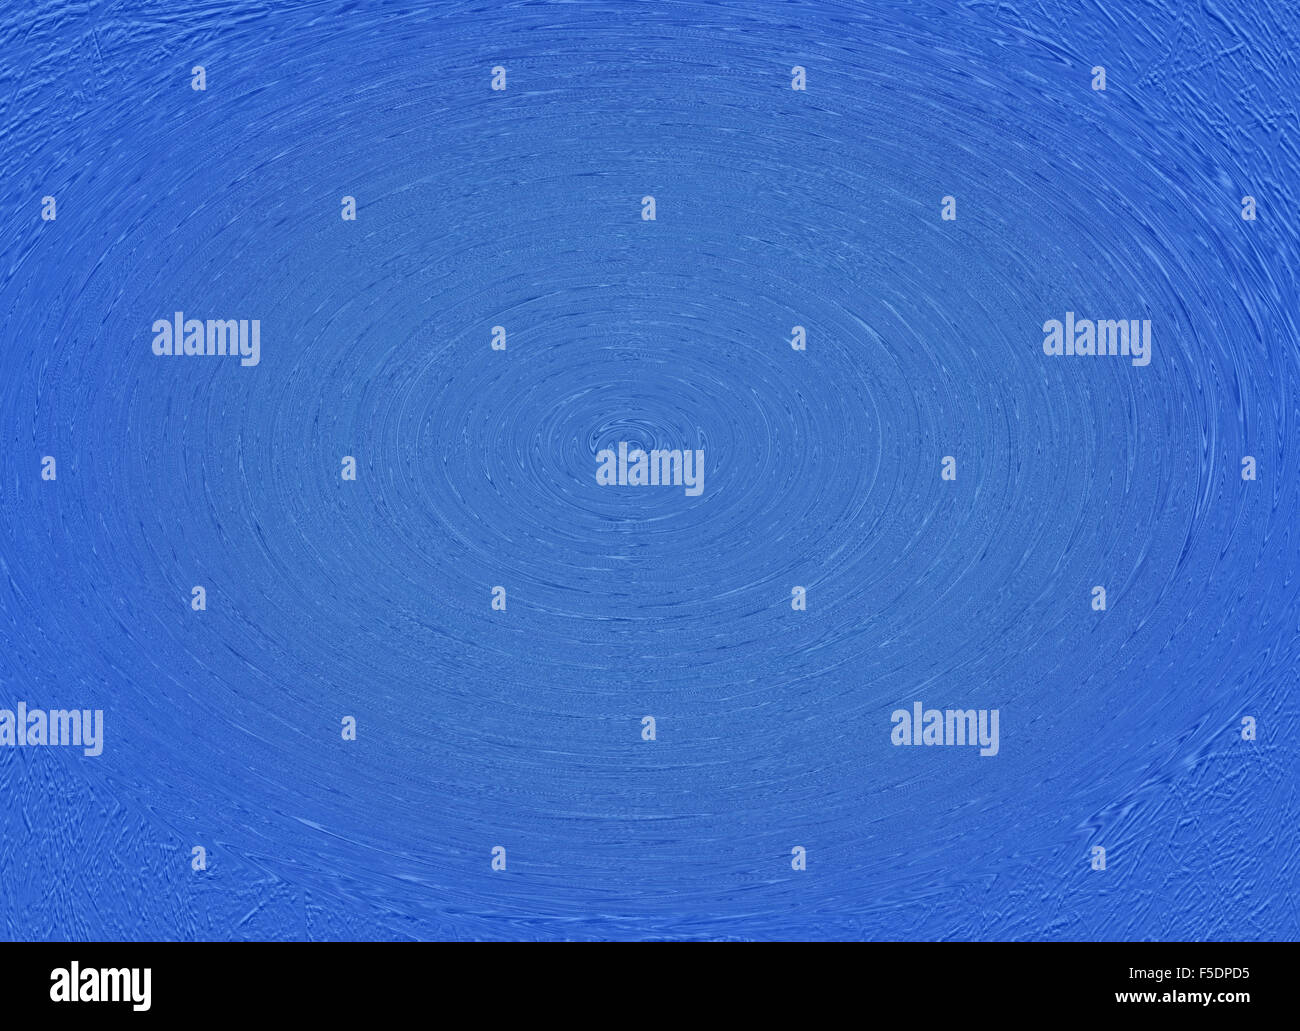 pretty swirls or ripples of blue background texture - Stock Image